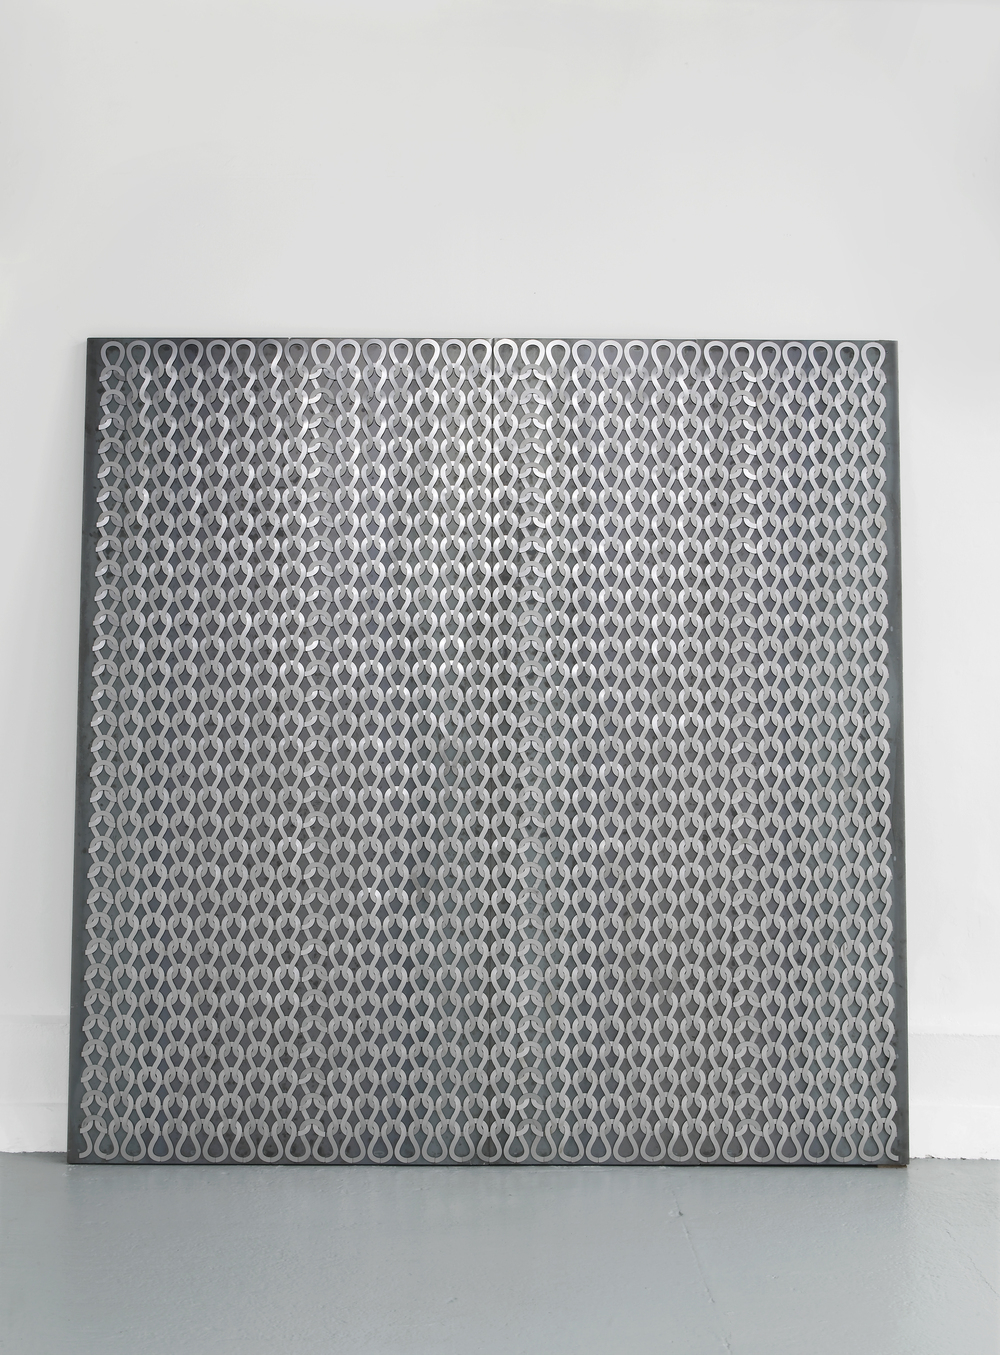 Uknit 2  2011  Steel, magnets  250 x 250 cm / 98.4 x 98.4 in